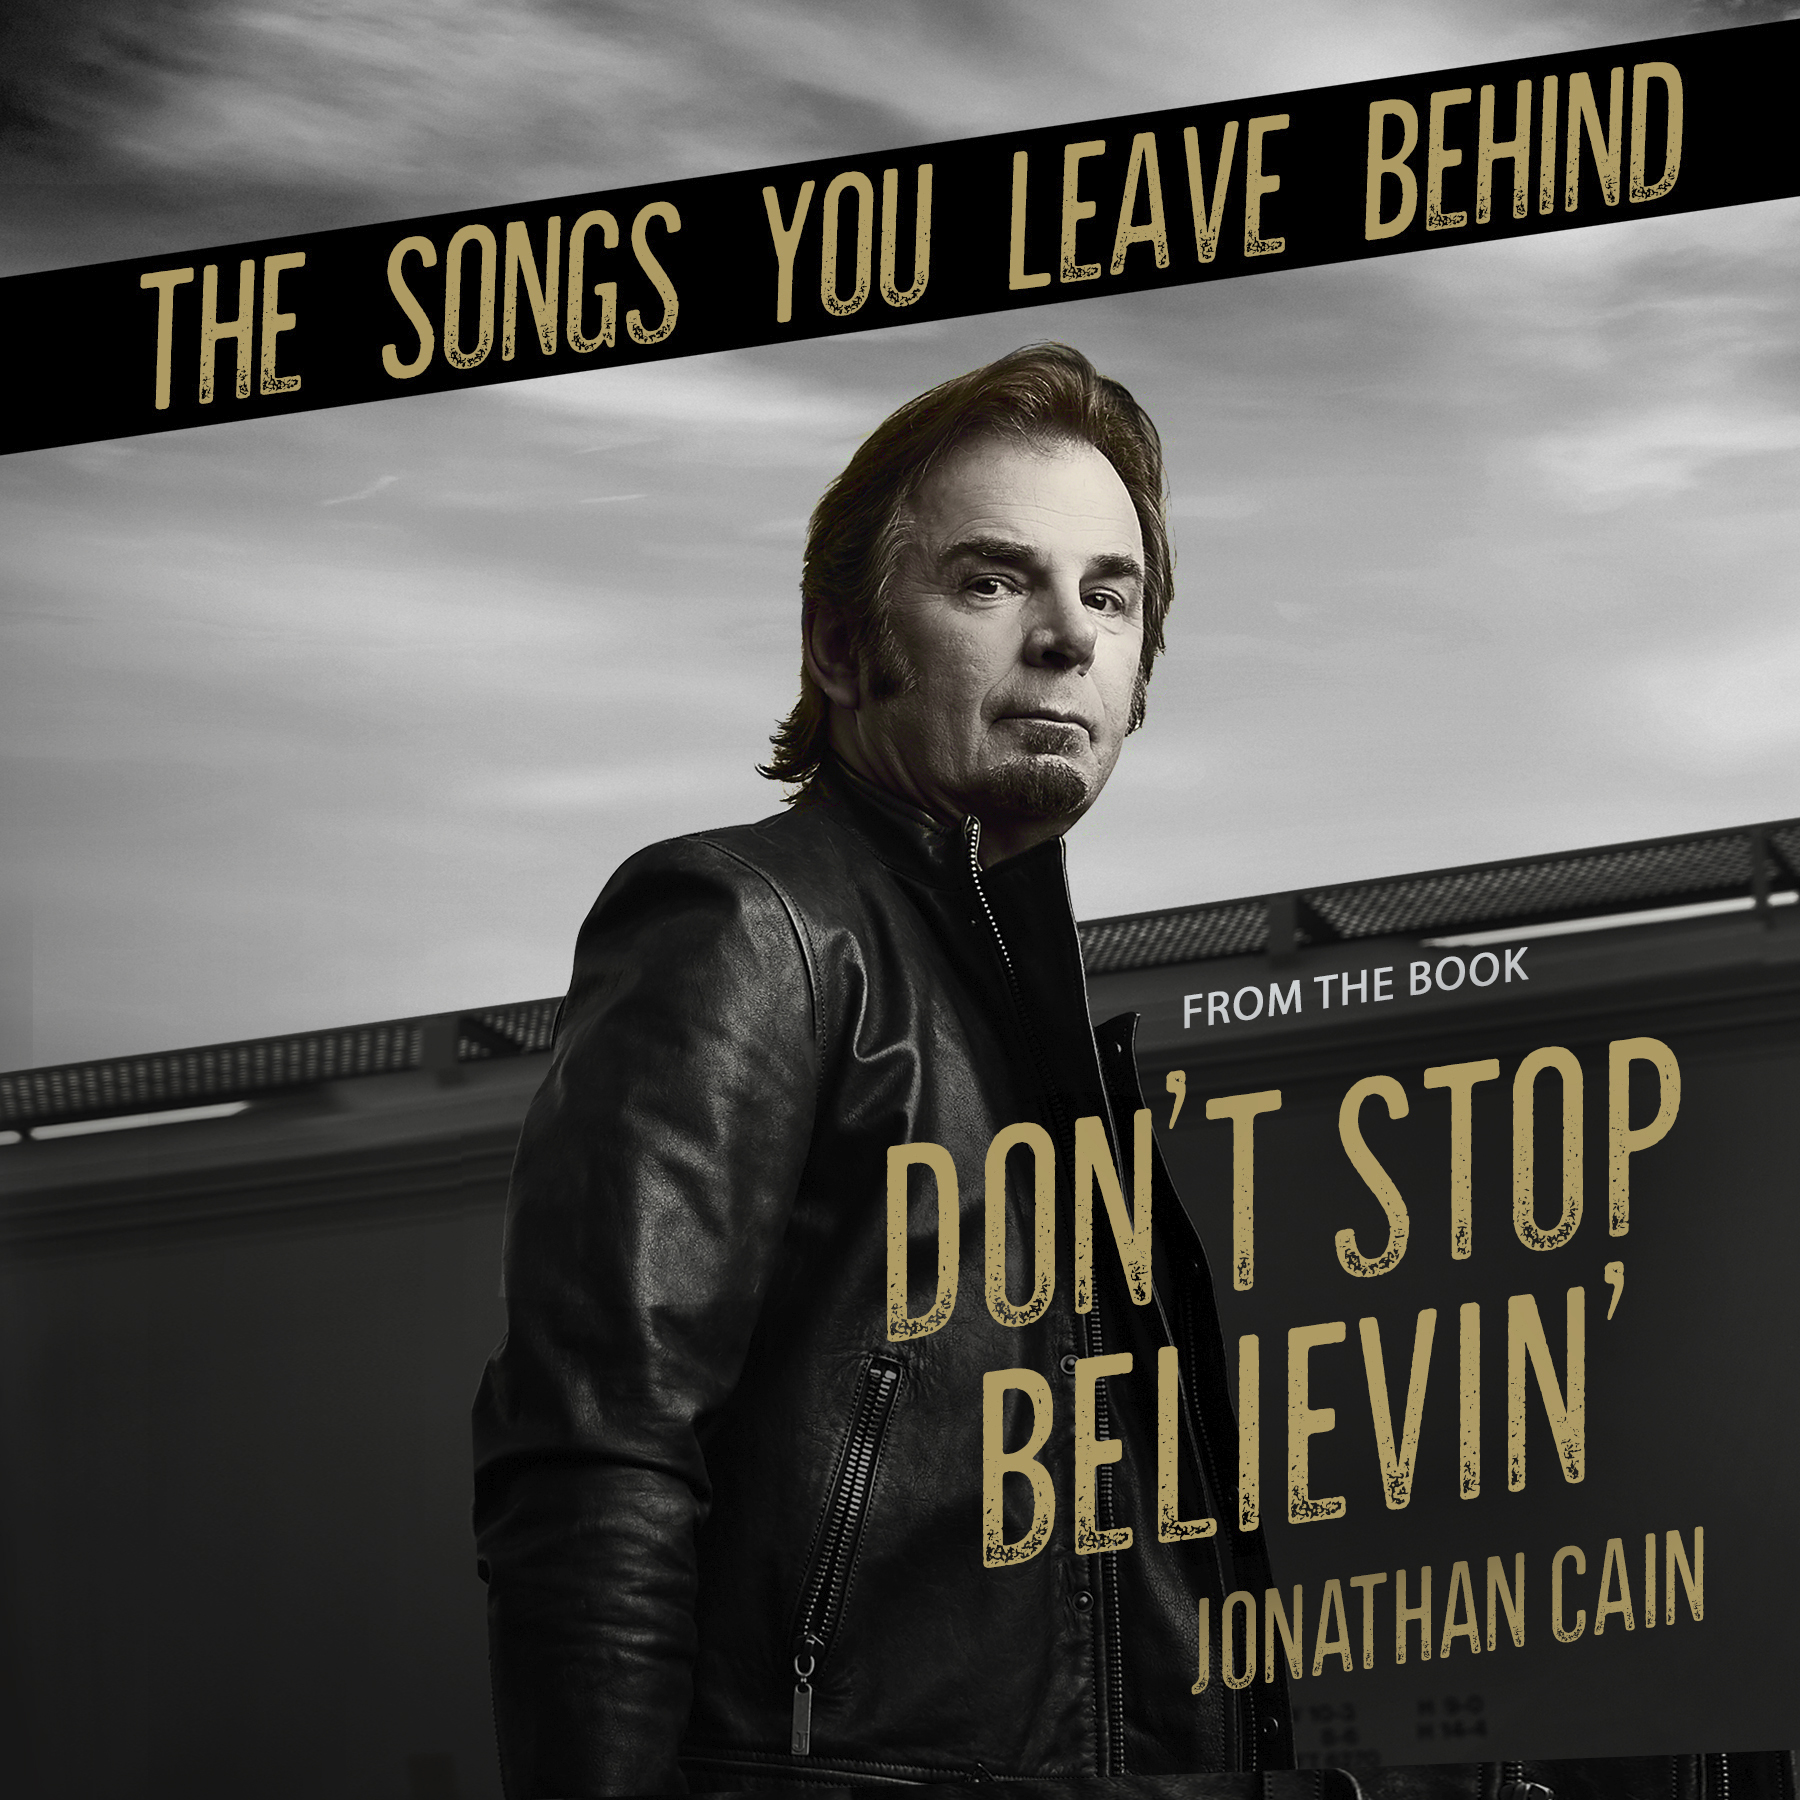 Jonathan Cain - The Songs You Leave Behind